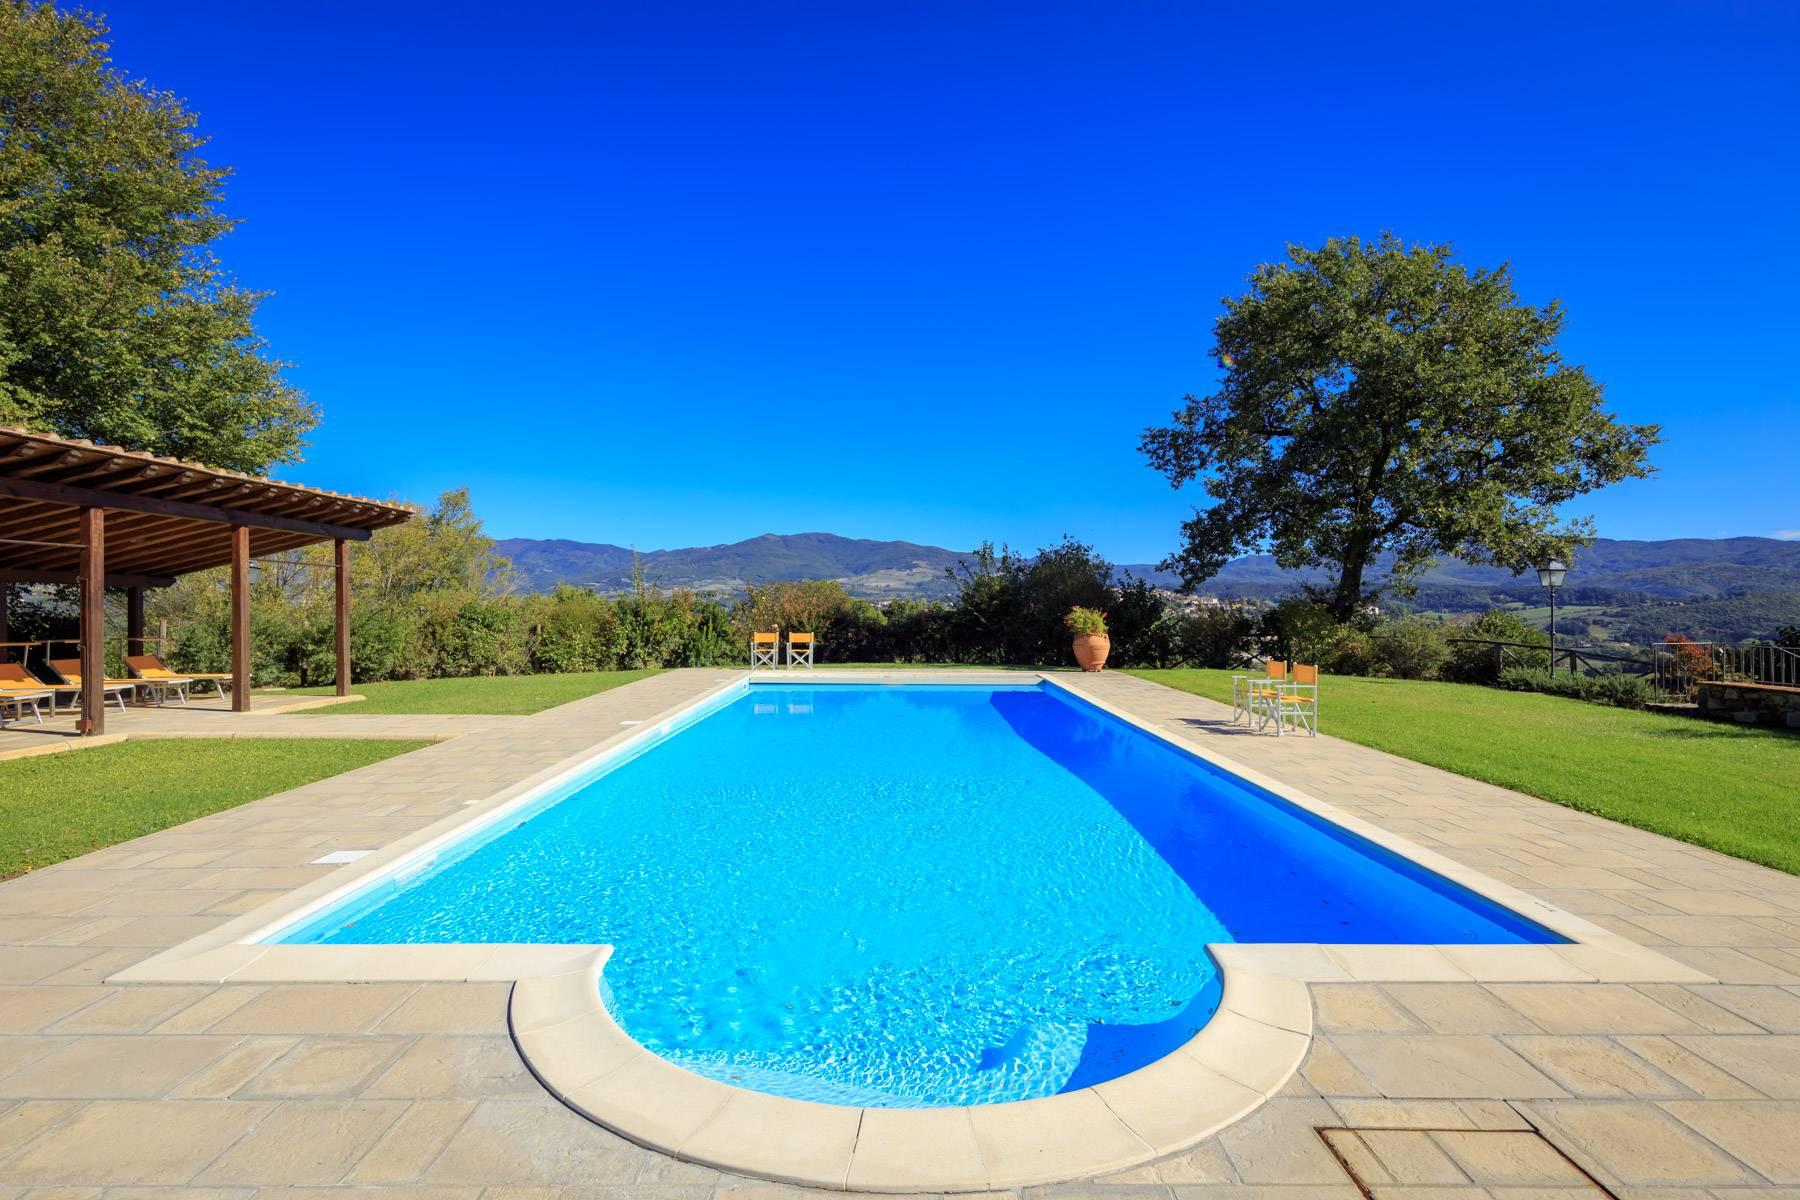 Marvelous estate with views over the Casentino valley - 29